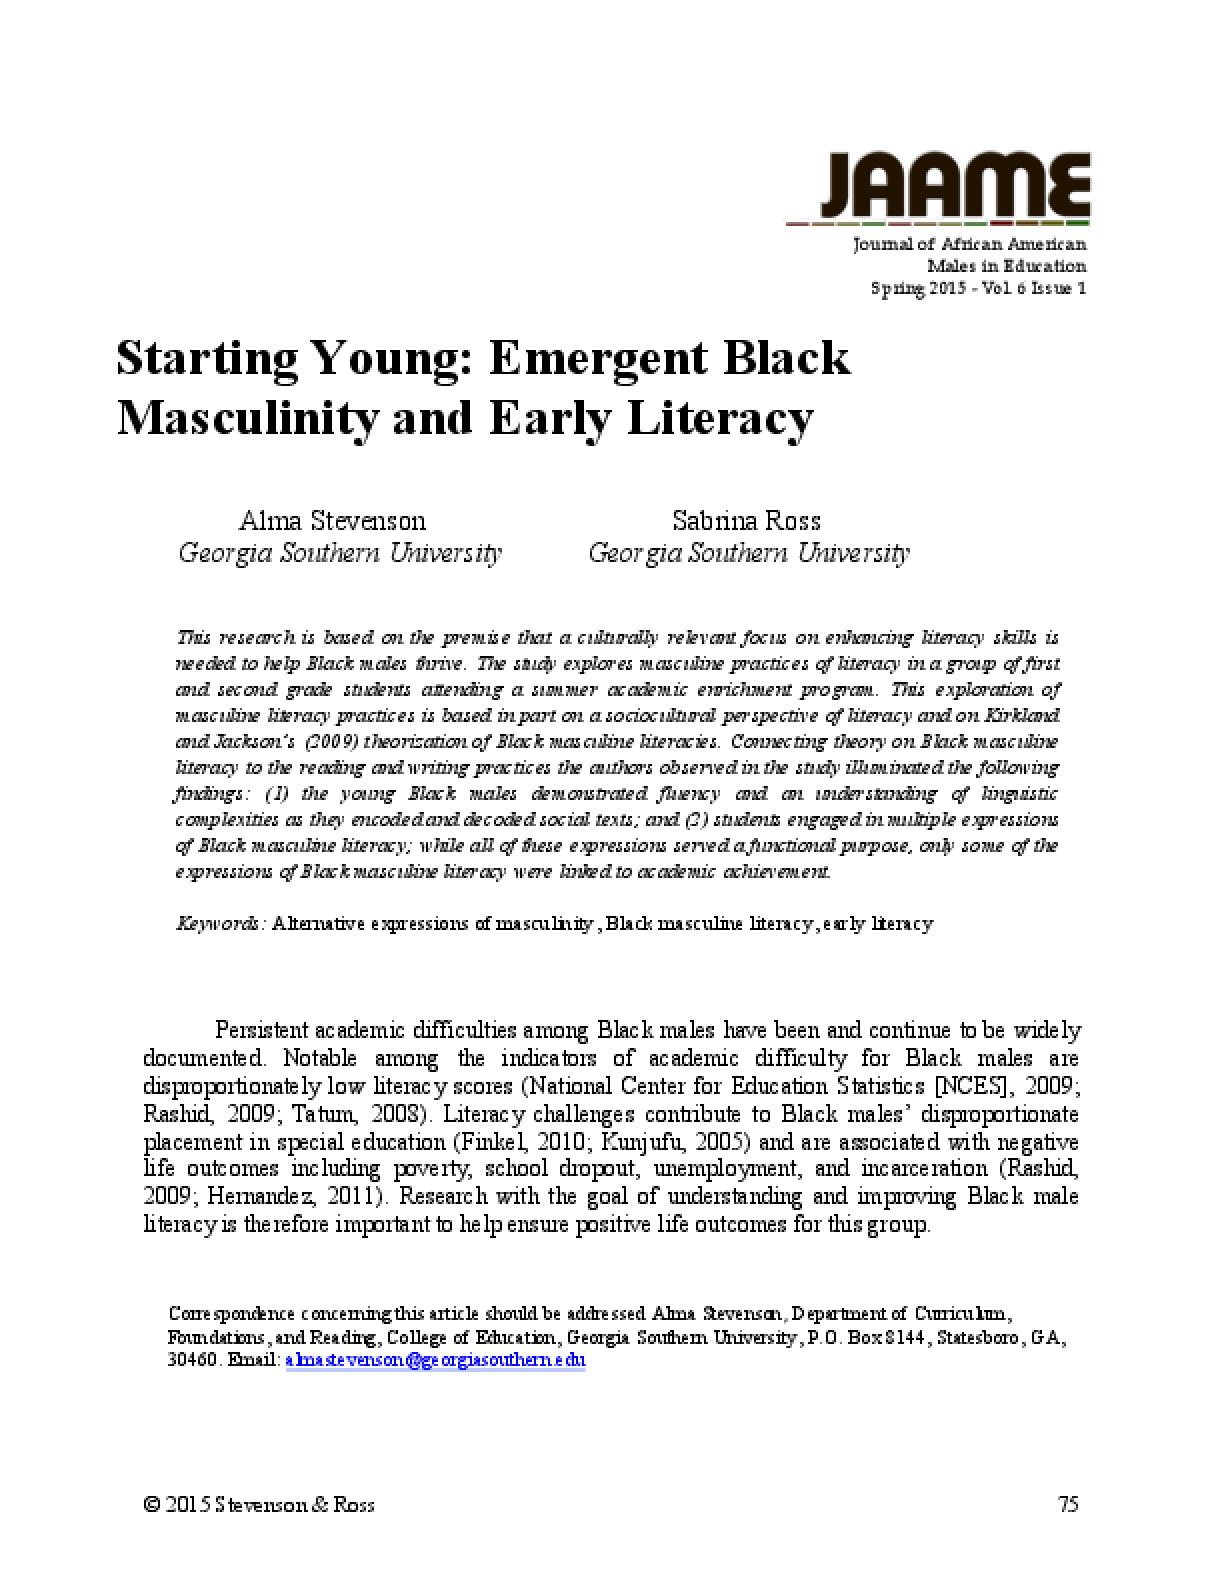 Starting Young: Emergent Black Masculinity and Early Literacy